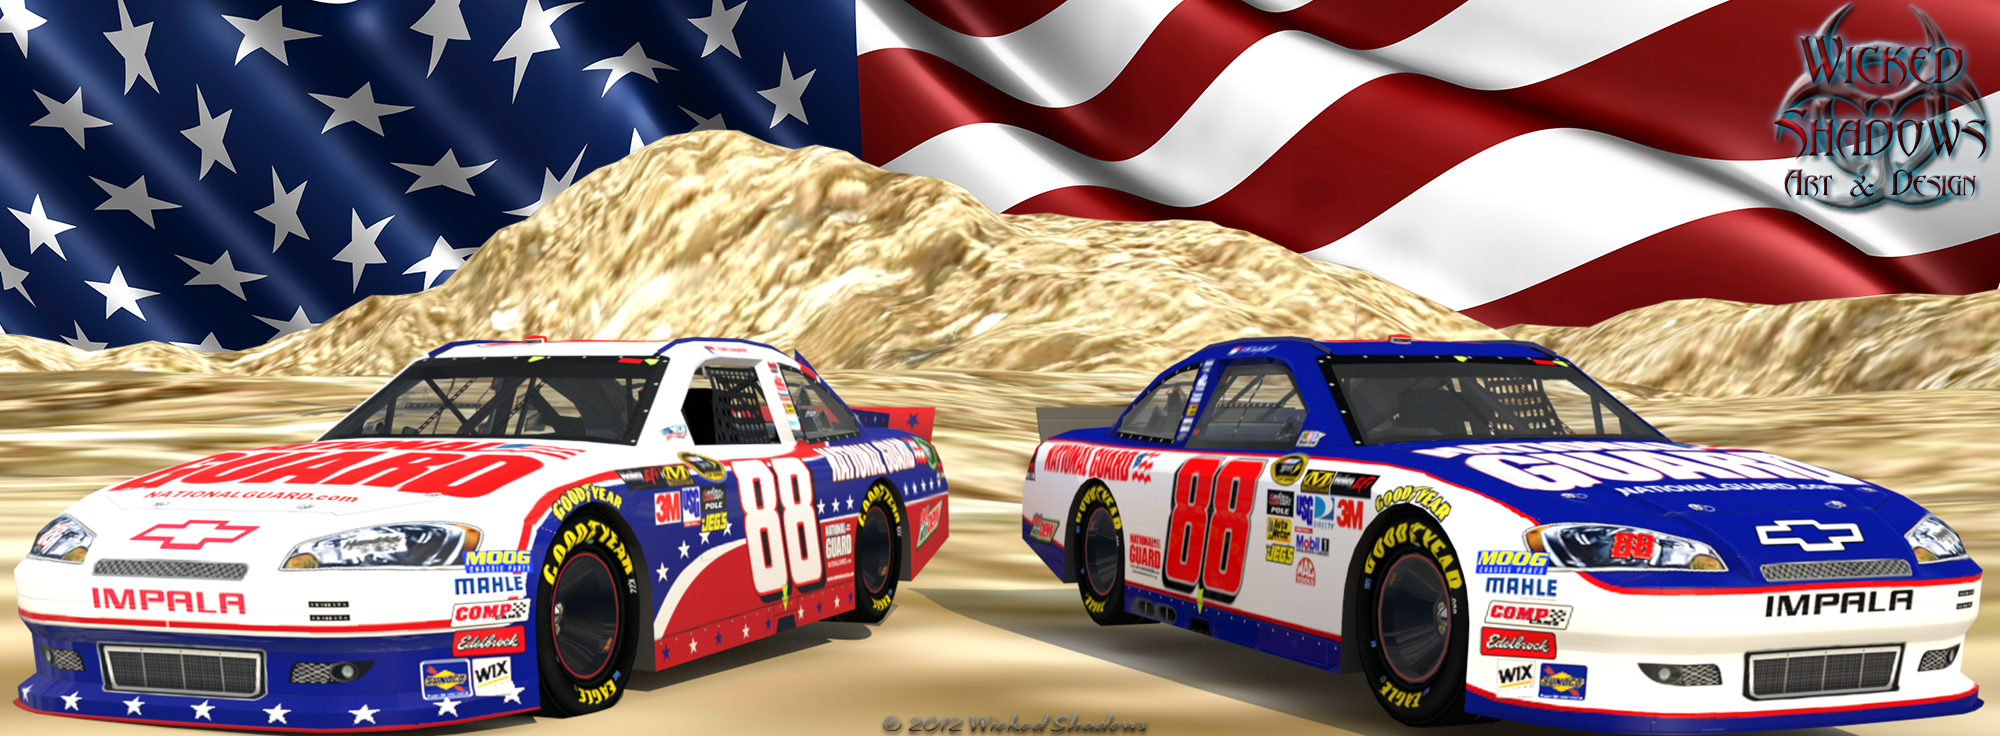 Wallpapers By Wicked Shadows Jimmie Johnson Nascar Unites: Wallpapers By Wicked Shadows: Dale Earnhardt Jr. Nascar